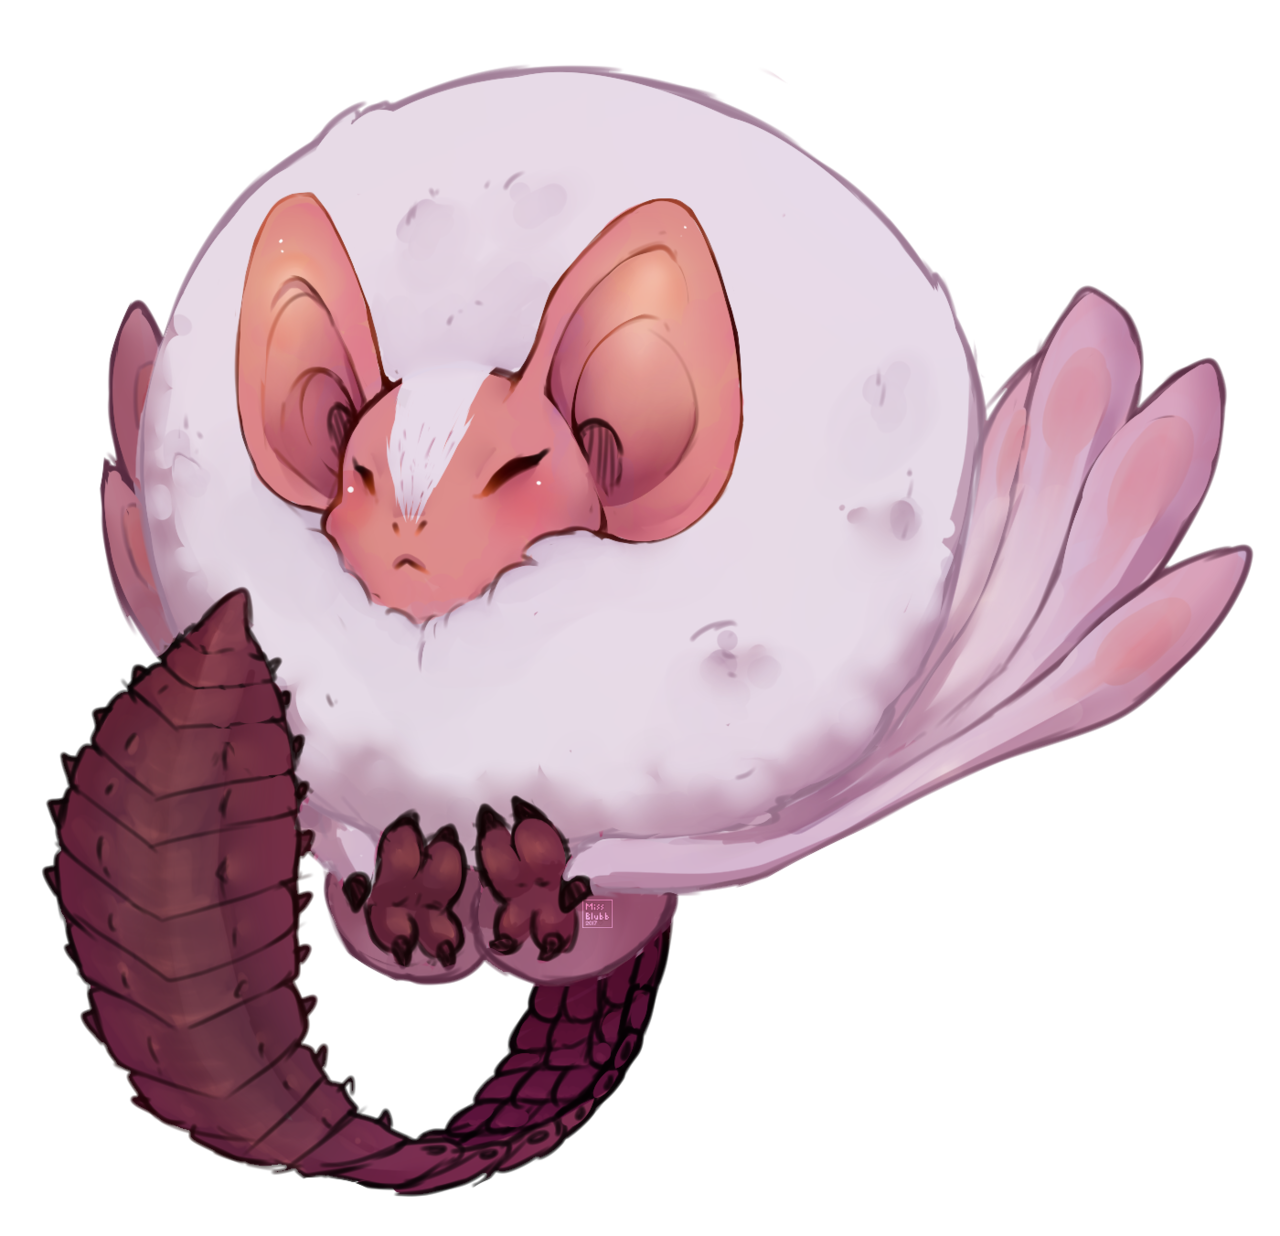 Hunter clipart hunting equipment. Paolumu are flying wyverns